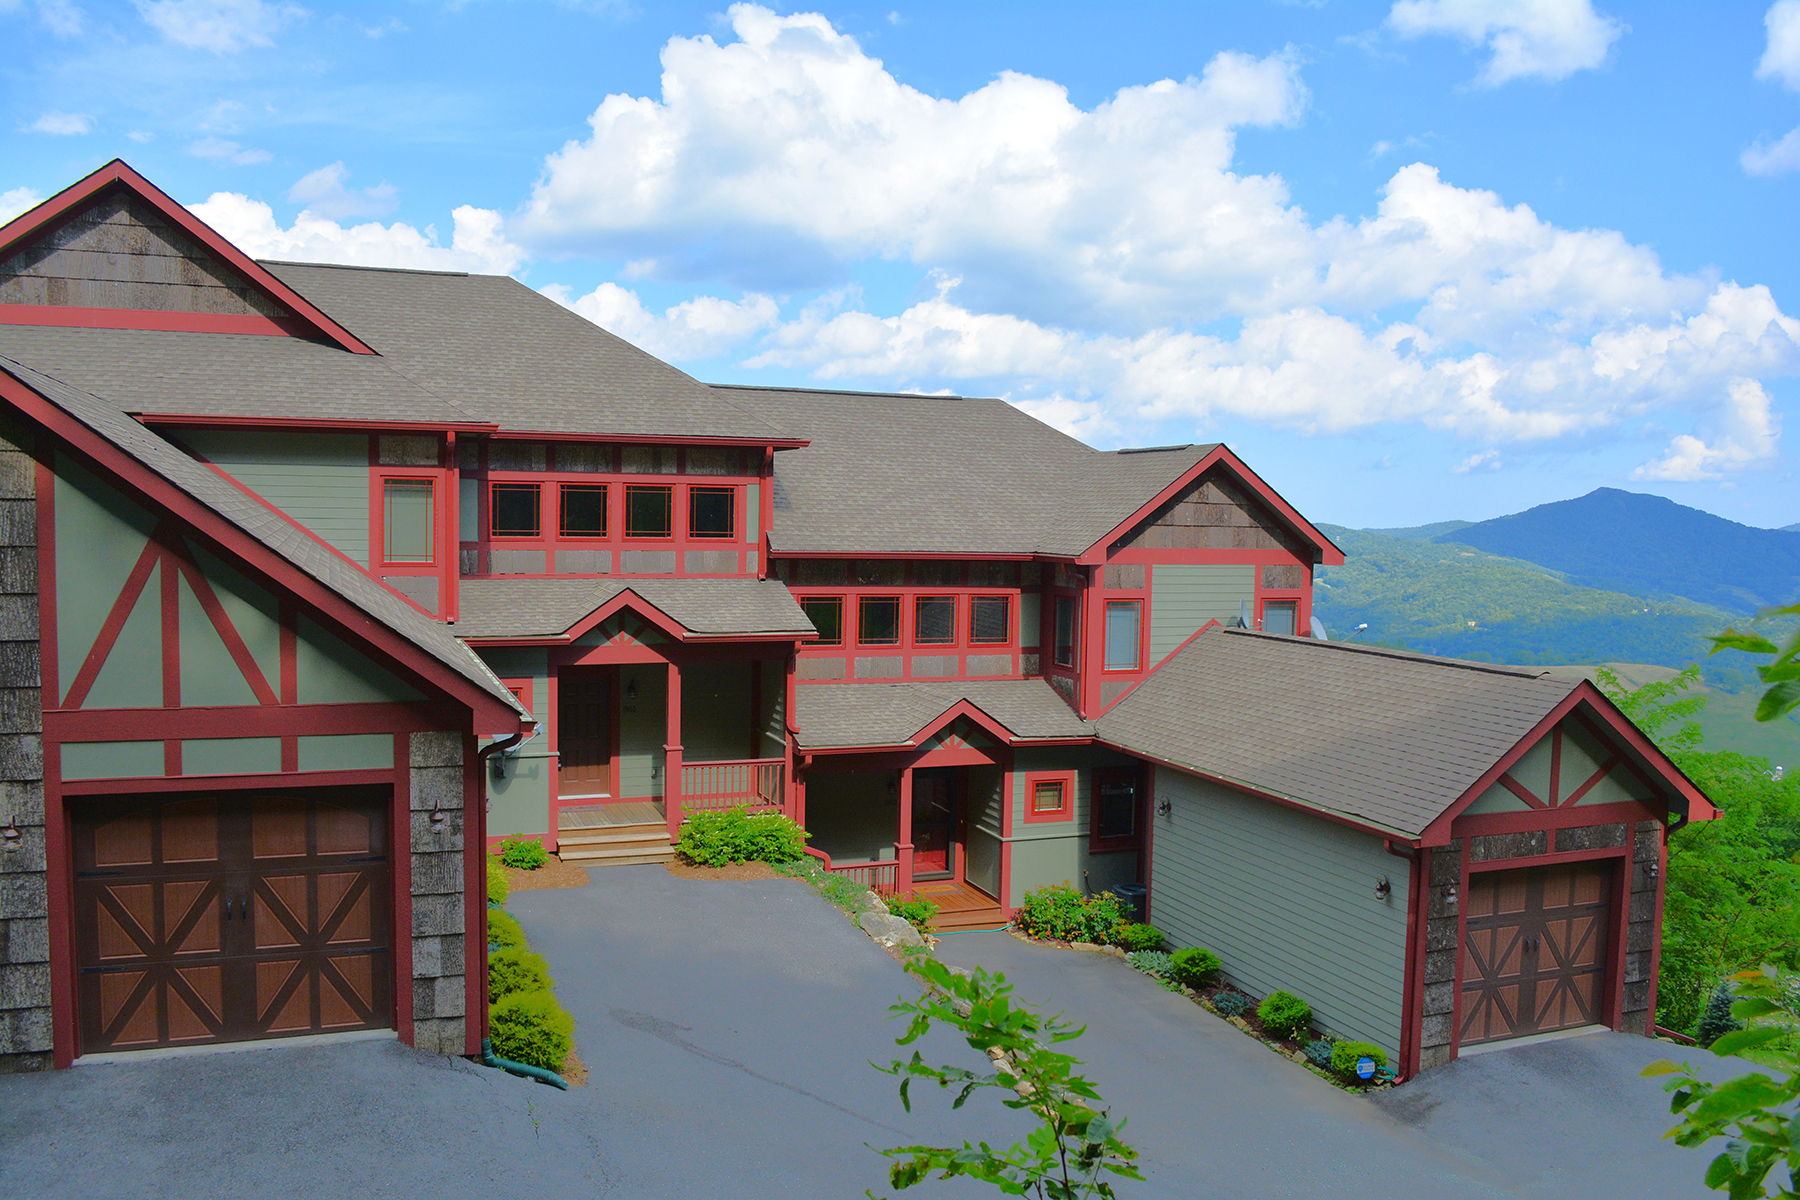 Condominium for Sale at BEECH MOUNTAIN - DEER CREEK FALLS 861 White Tail Trl B-3, Banner Elk, North Carolina 28604 United States